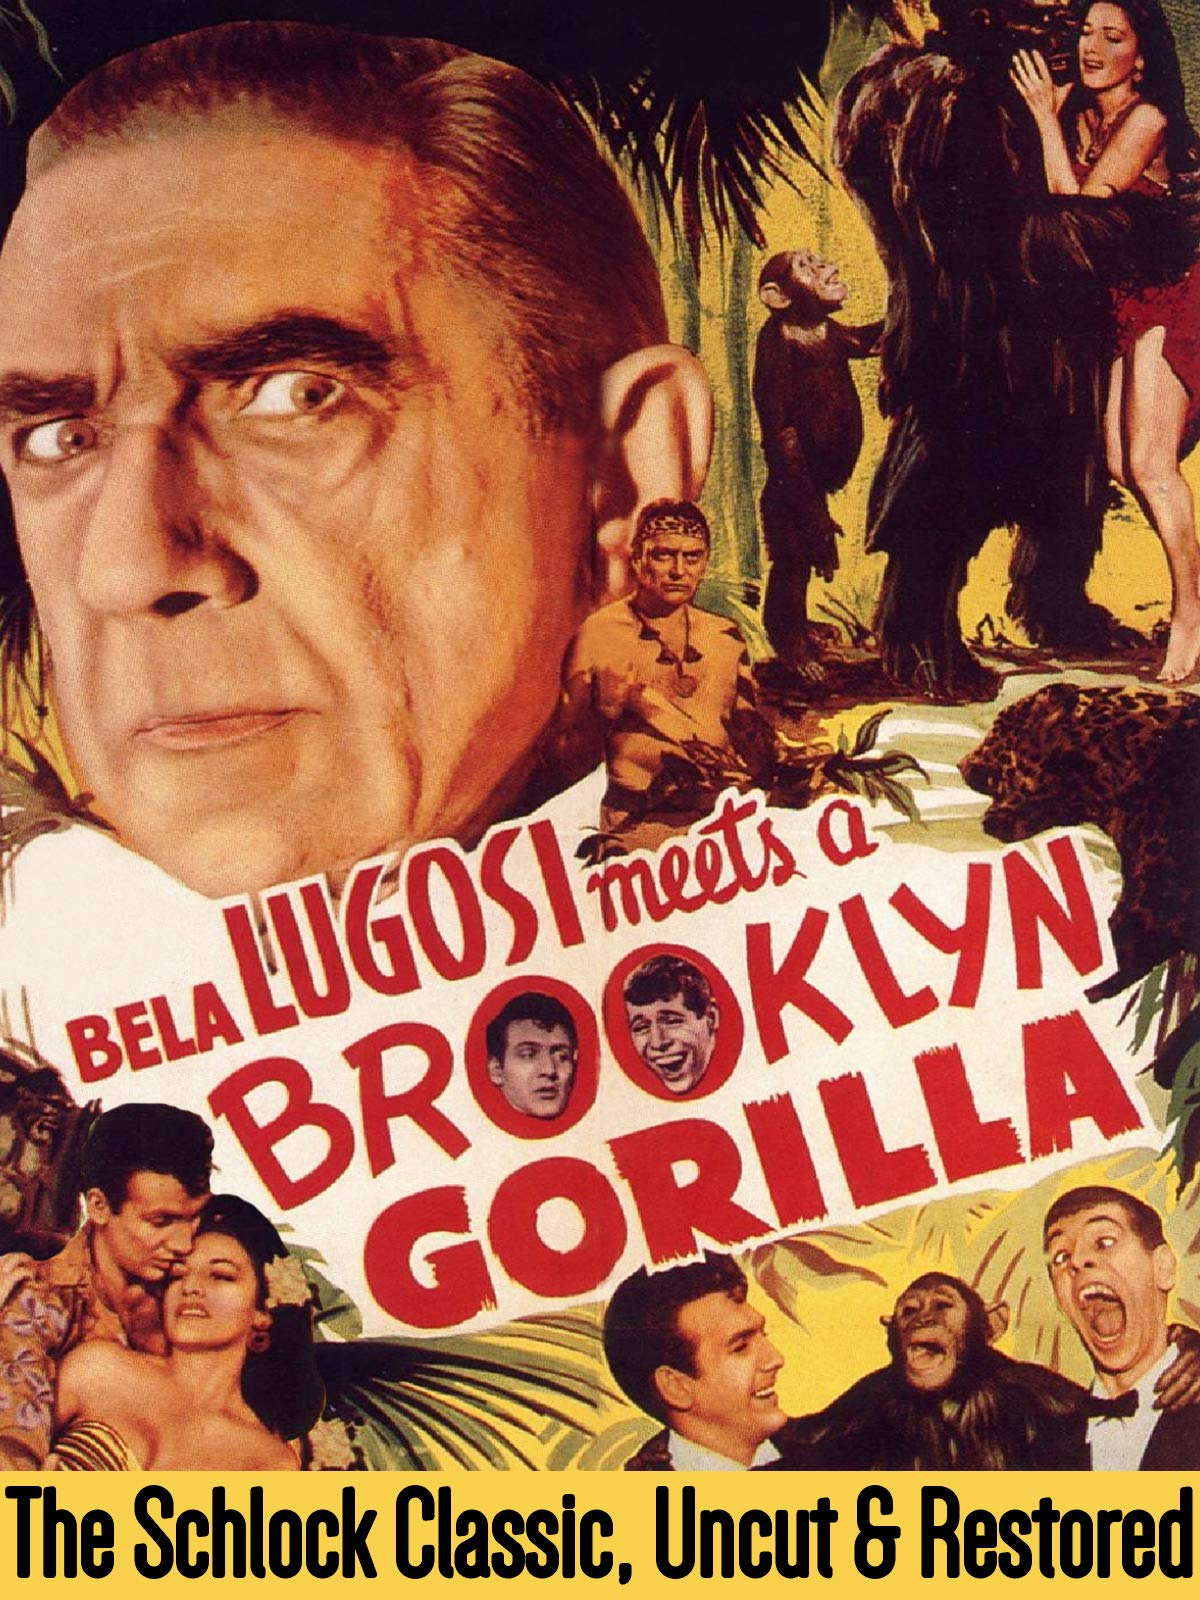 Bela Lugosi Meets A Brooklyn Gorilla - The Schlock Classic, Uncut & Restored